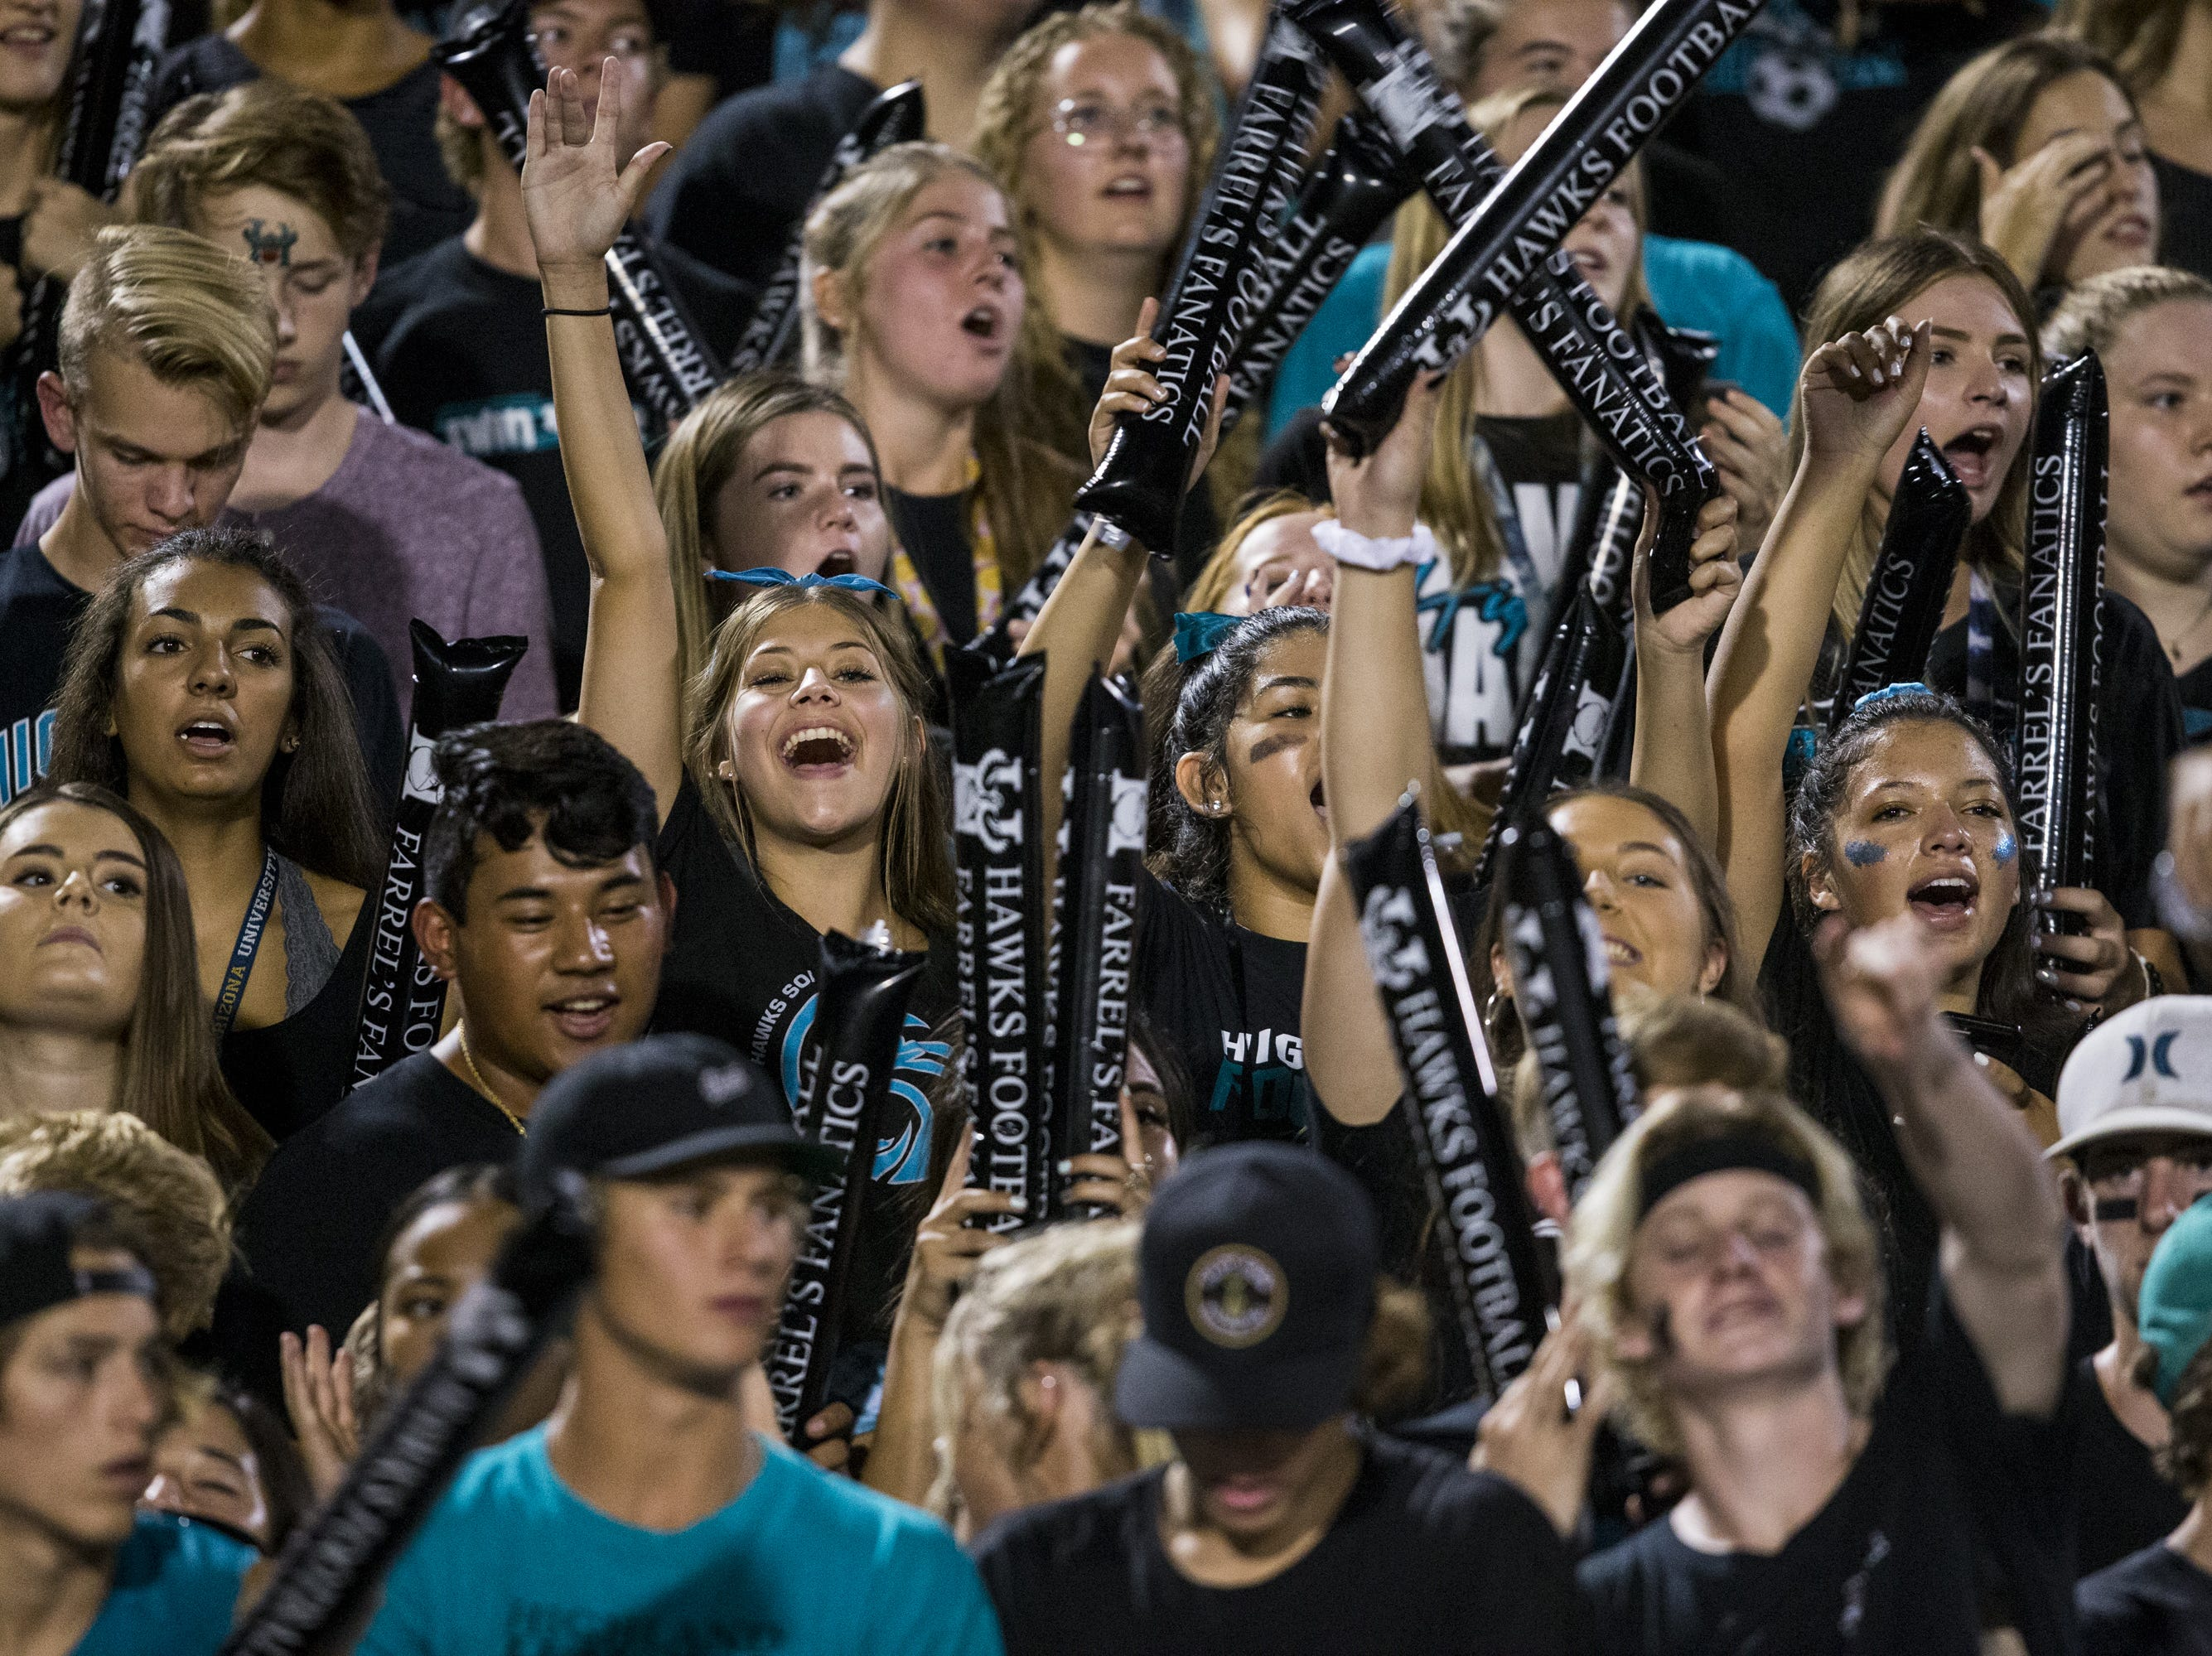 Highland fans cheer during the game against Desert Vista on Friday, Sept. 21, 2018, at Highland High School in Gilbert, Ariz.